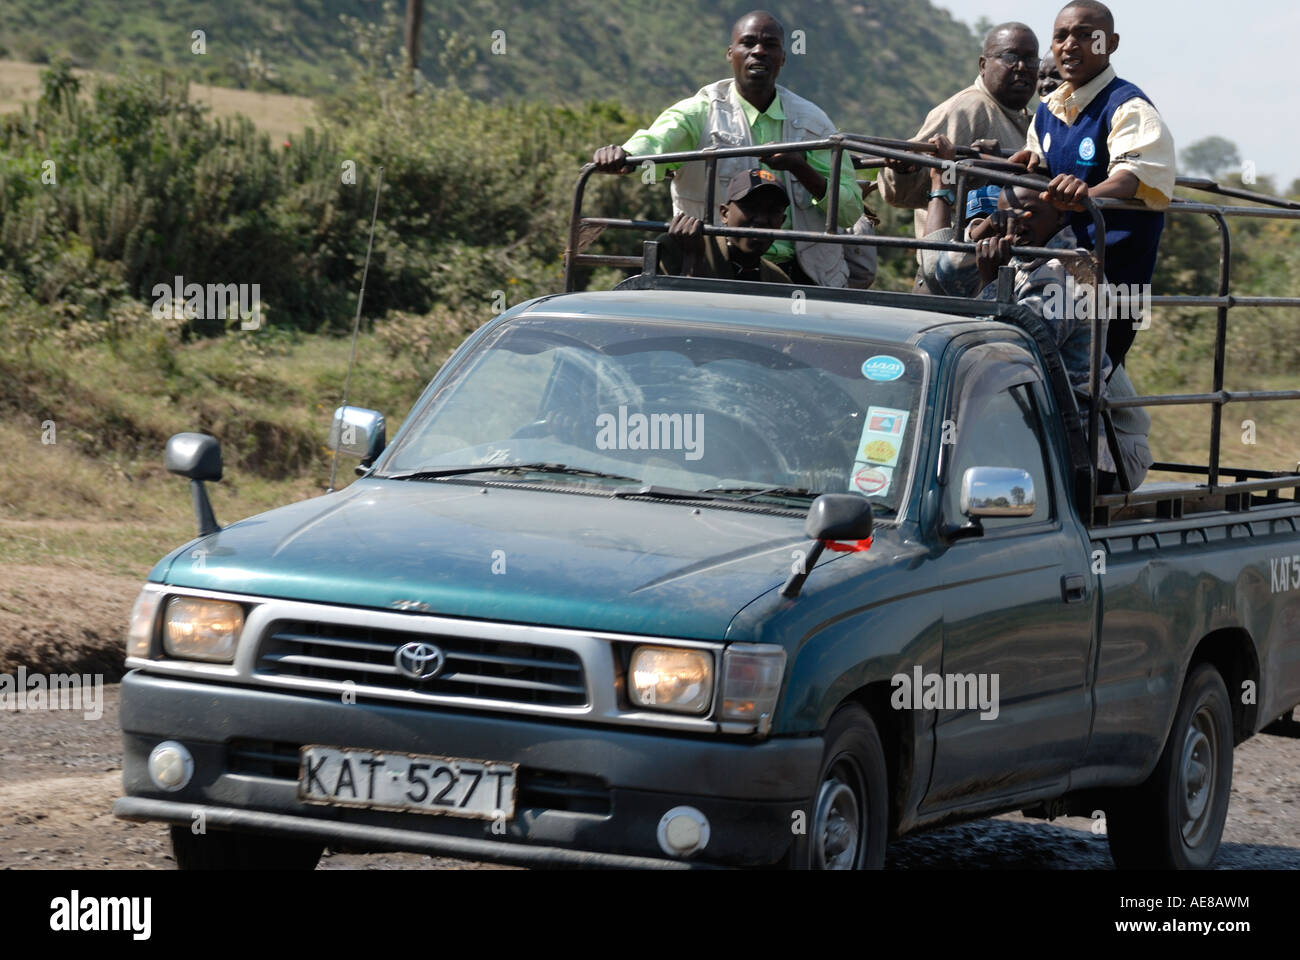 Toyota Pickup Truck Stock Photos & Toyota Pickup Truck Stock ...